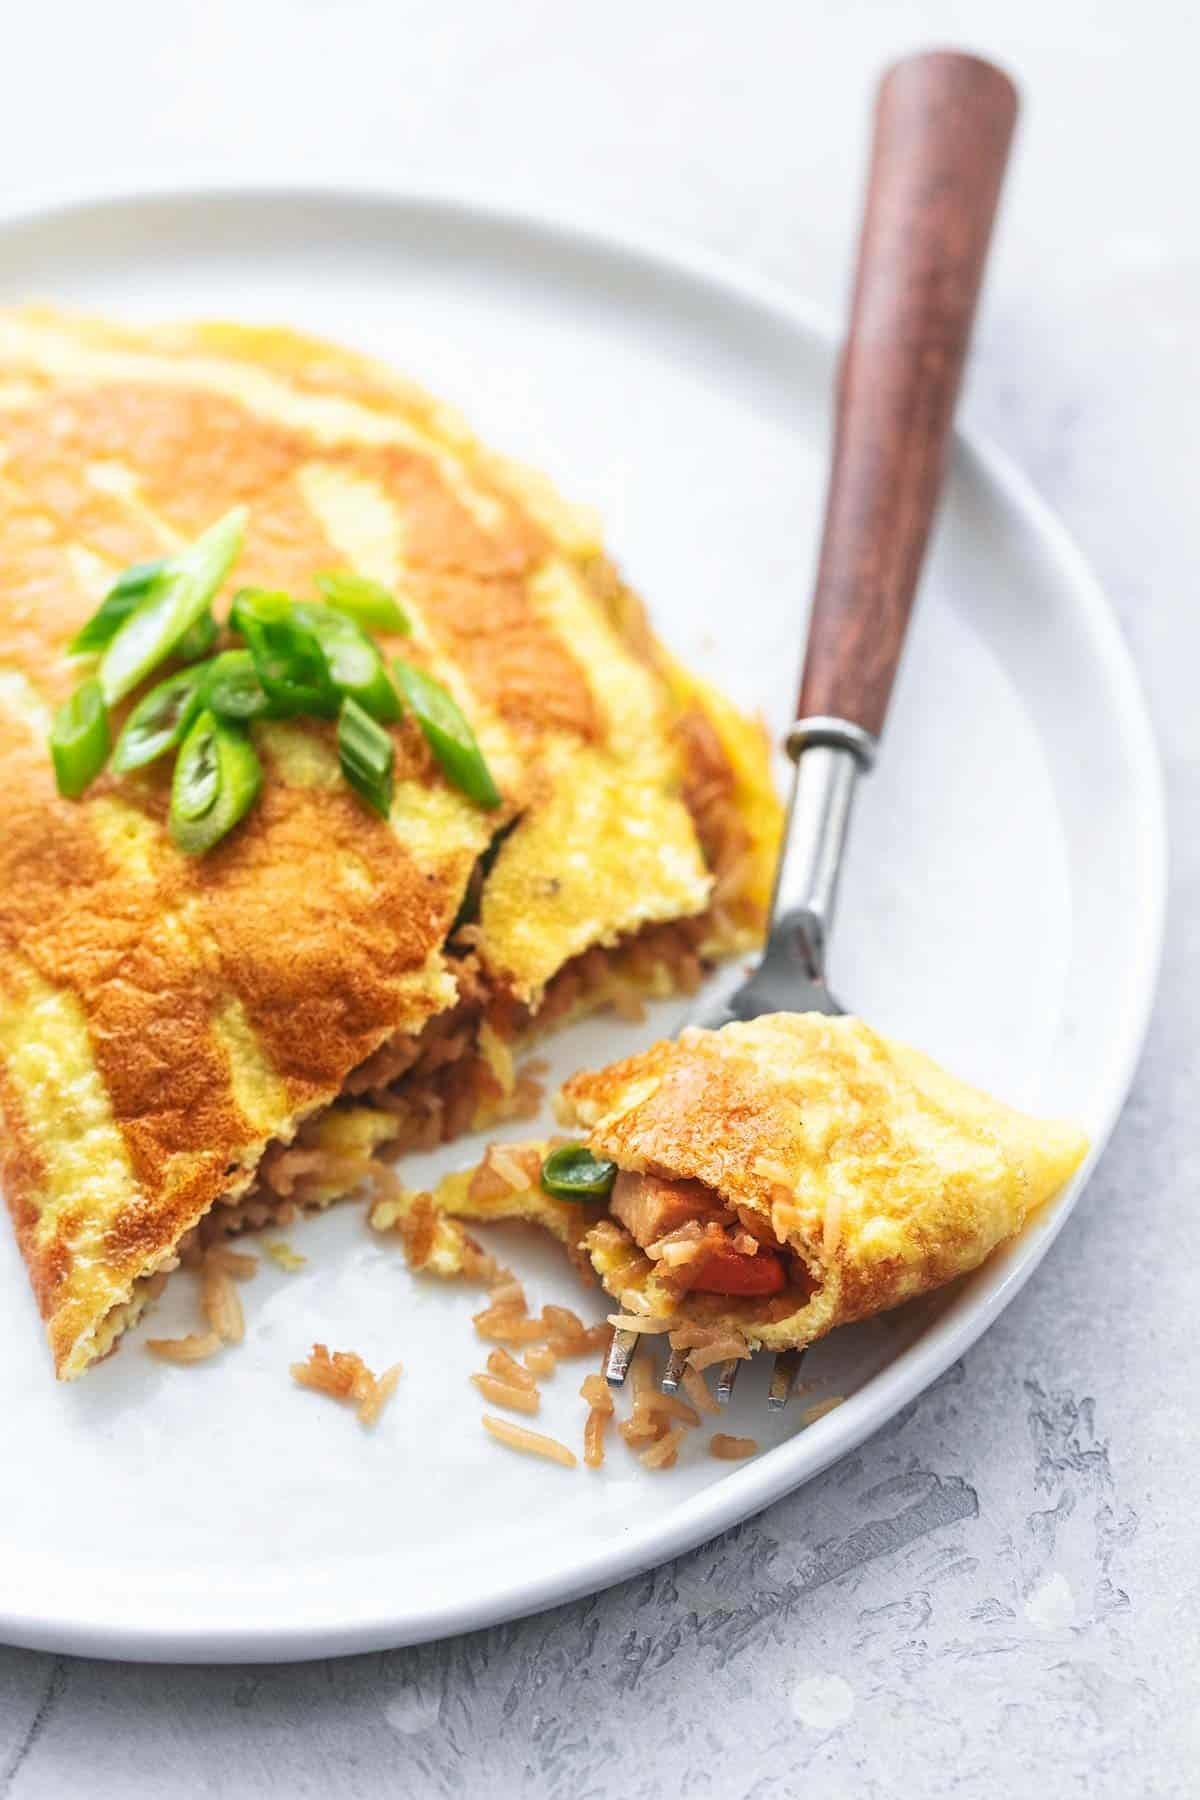 A fork cutting a folded Japanese omelet filled with rice, chicken, and vegetables.